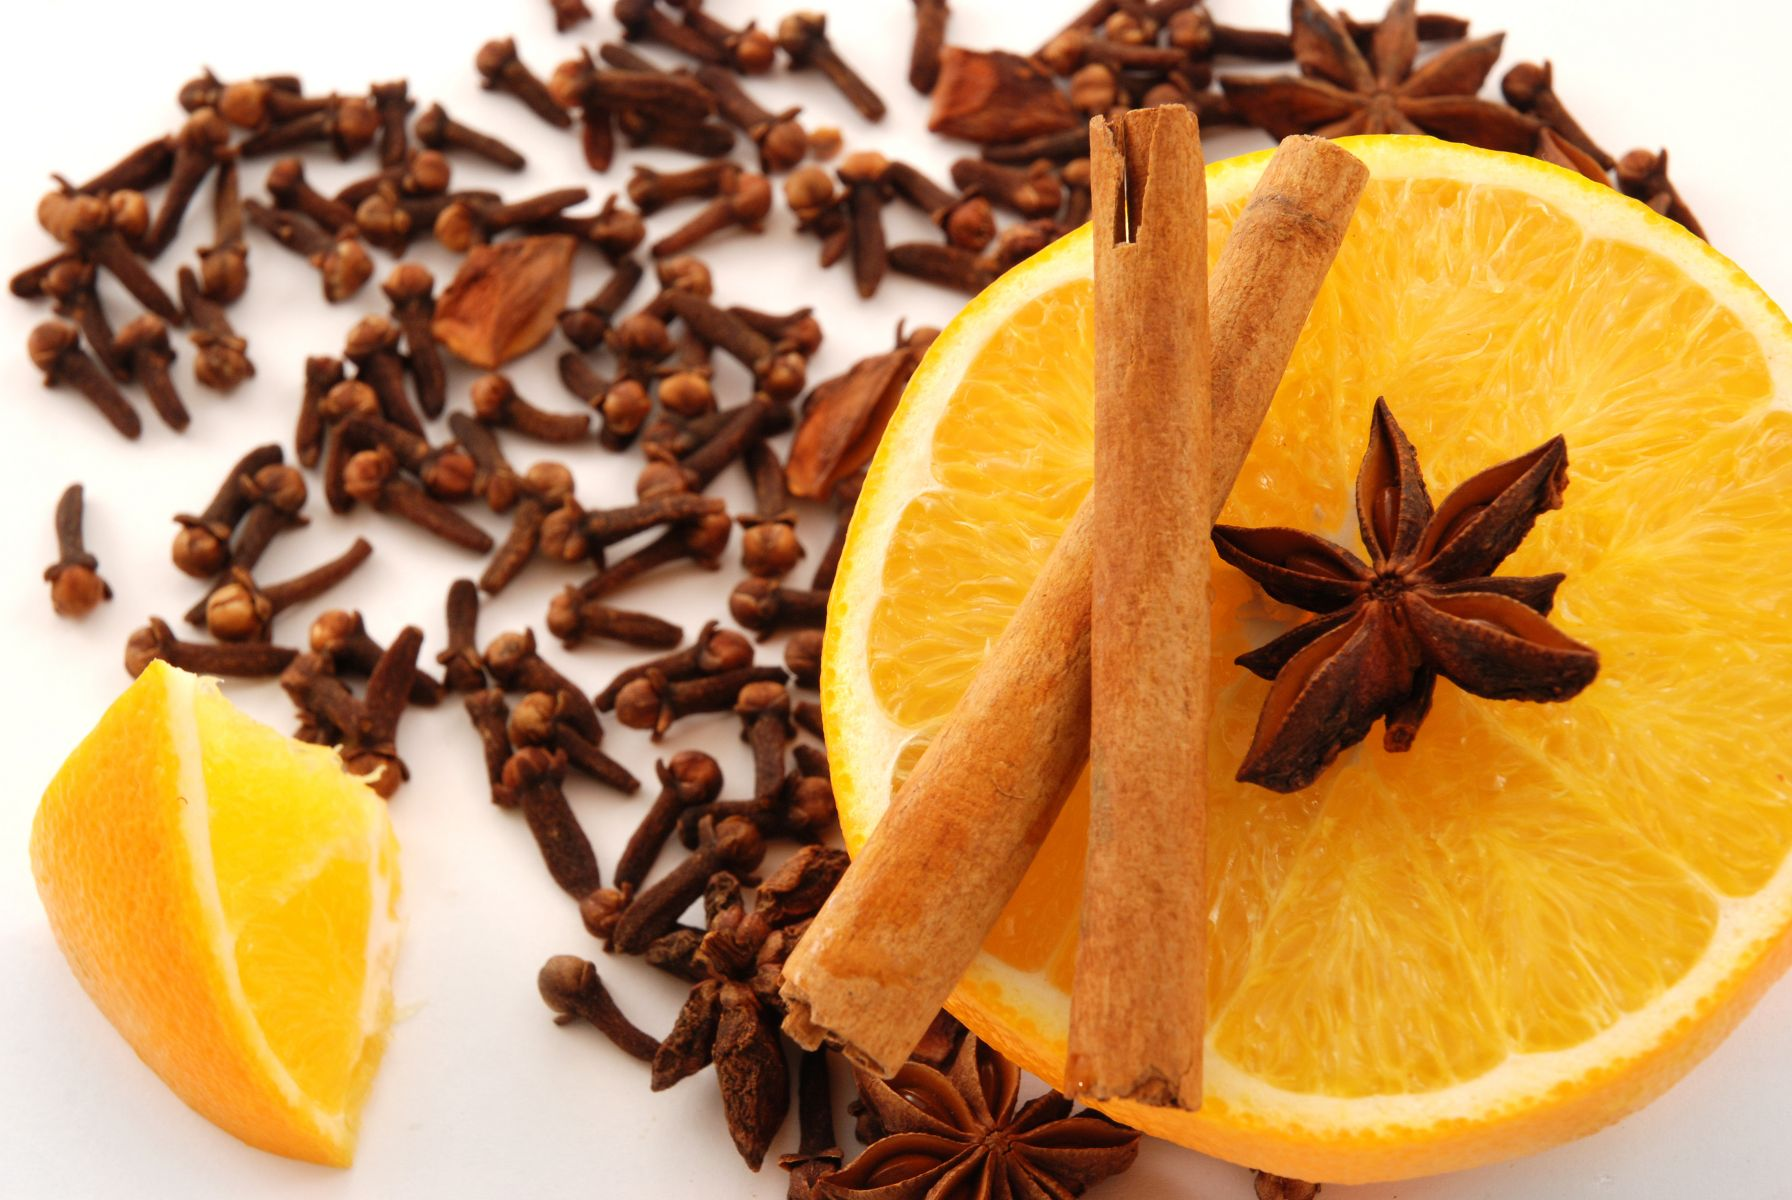 Clove, cinnamon sticks, star anise  and a sliced open orange by © Skoric | Dreamstime.com